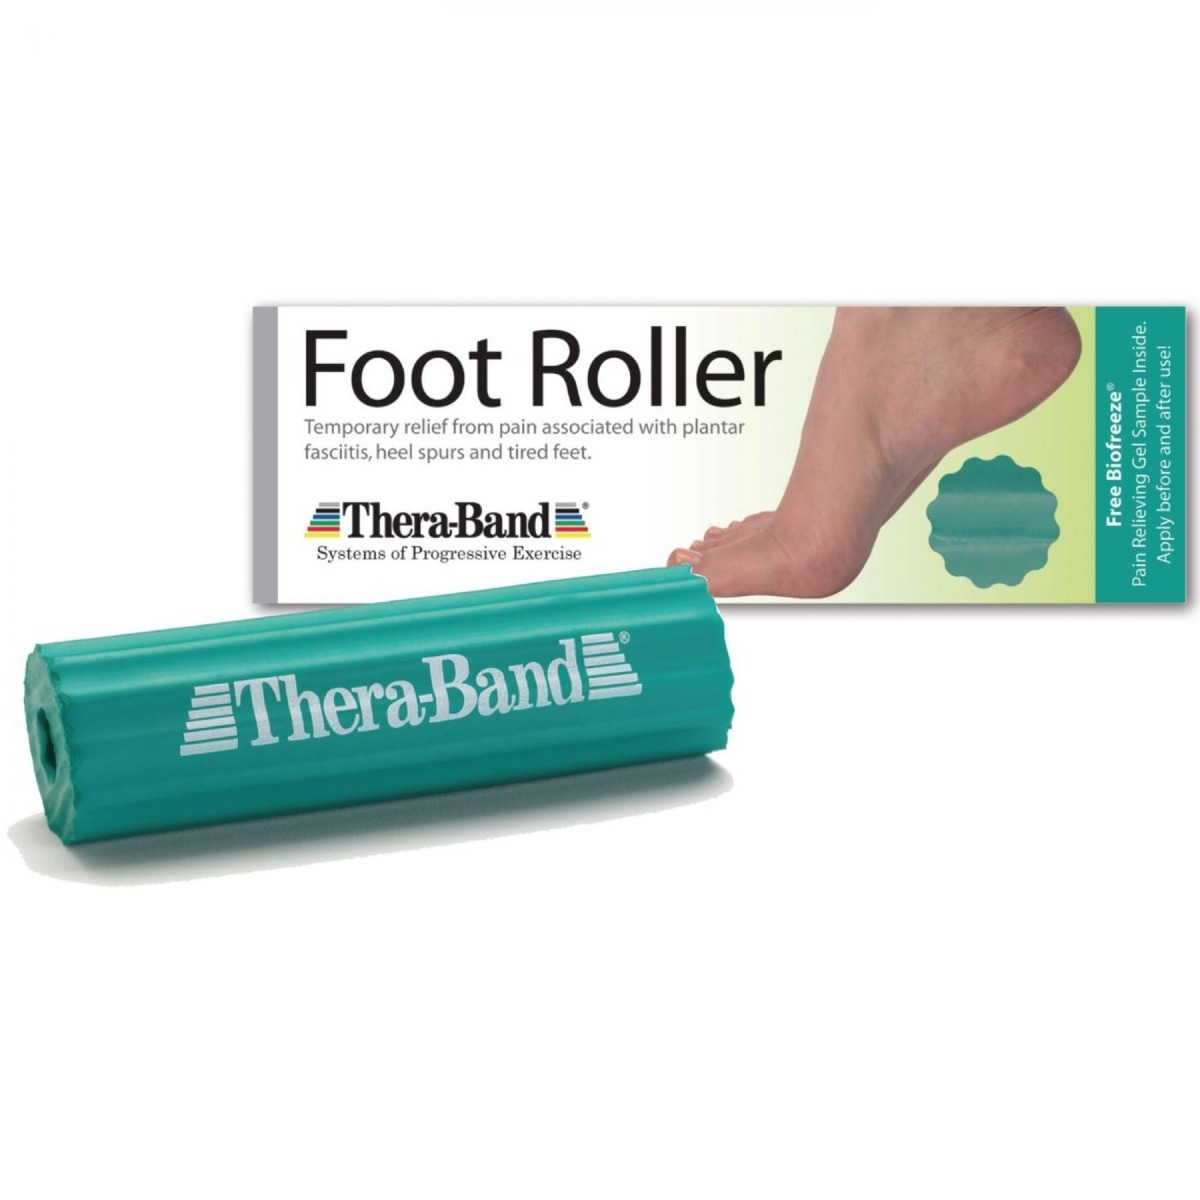 Product photo of green Theraband foot roller in front, with box behind it